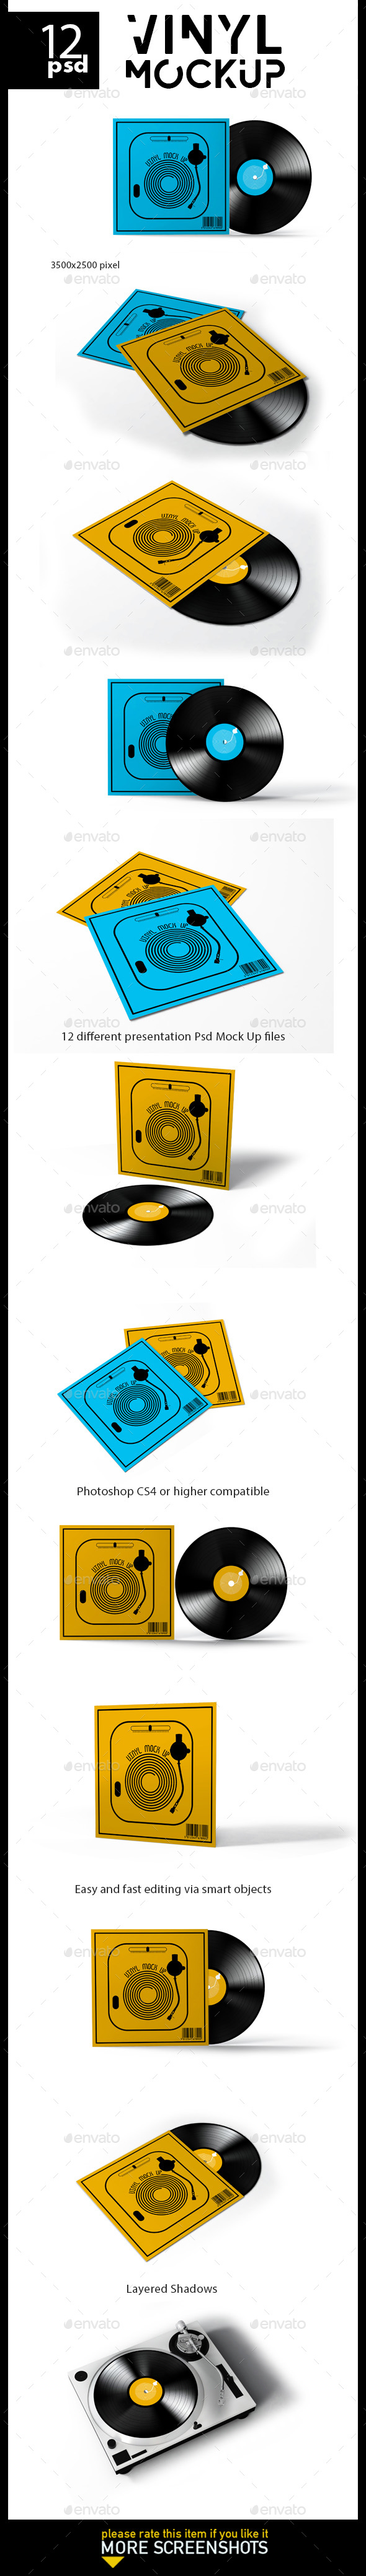 Vinyl Record Mock-Up - Print Product Mock-Ups